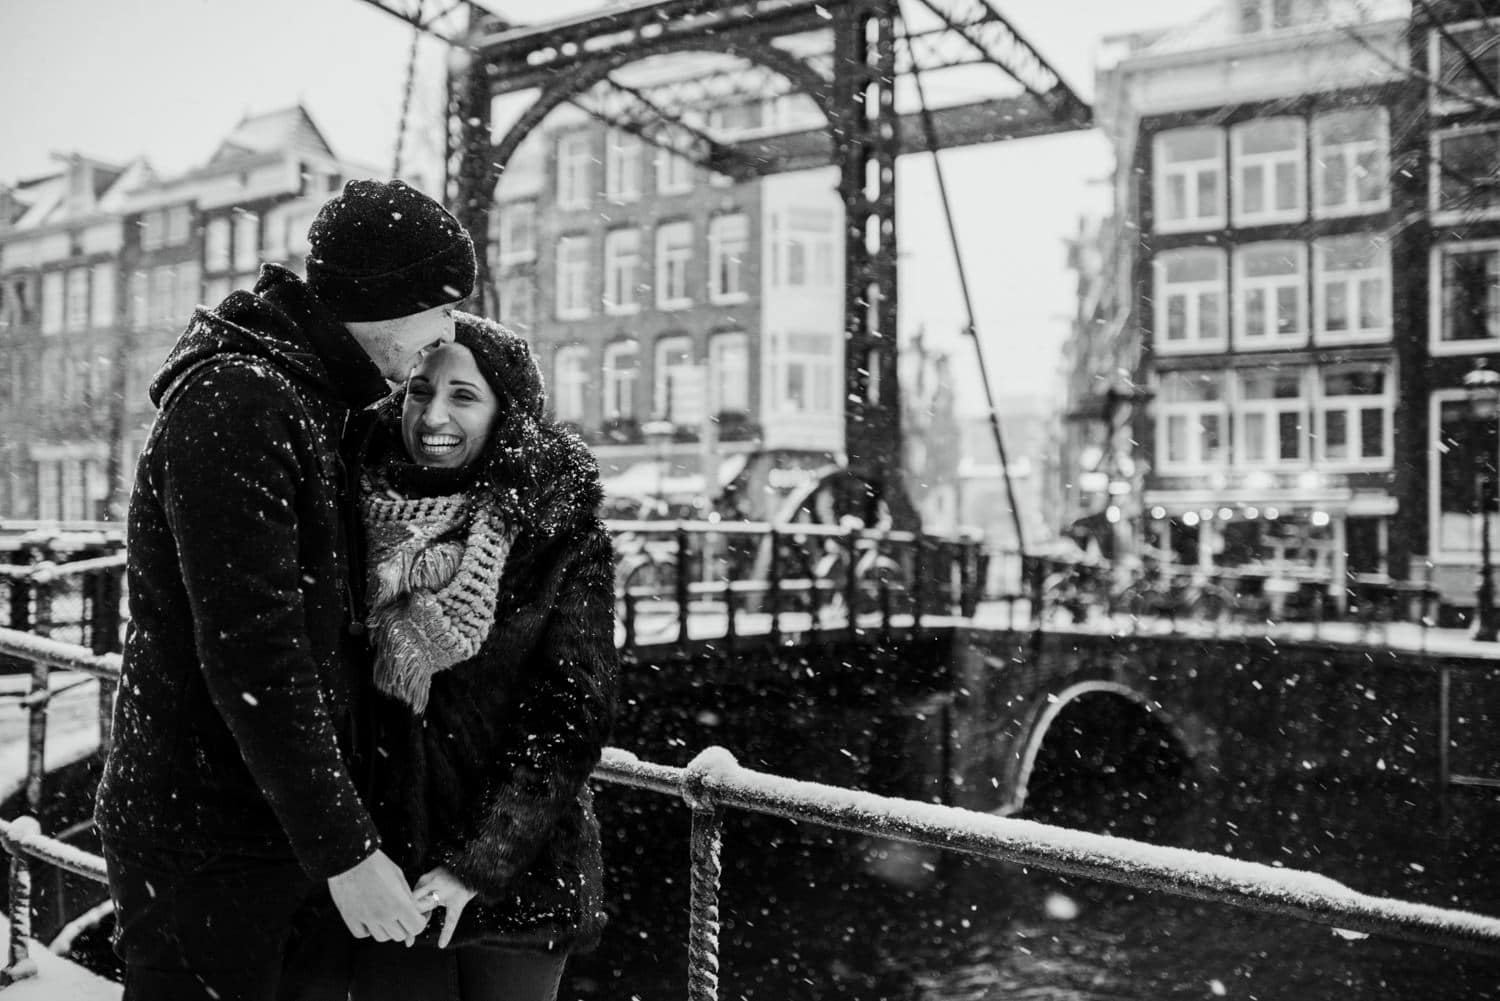 amsterdam in the snow